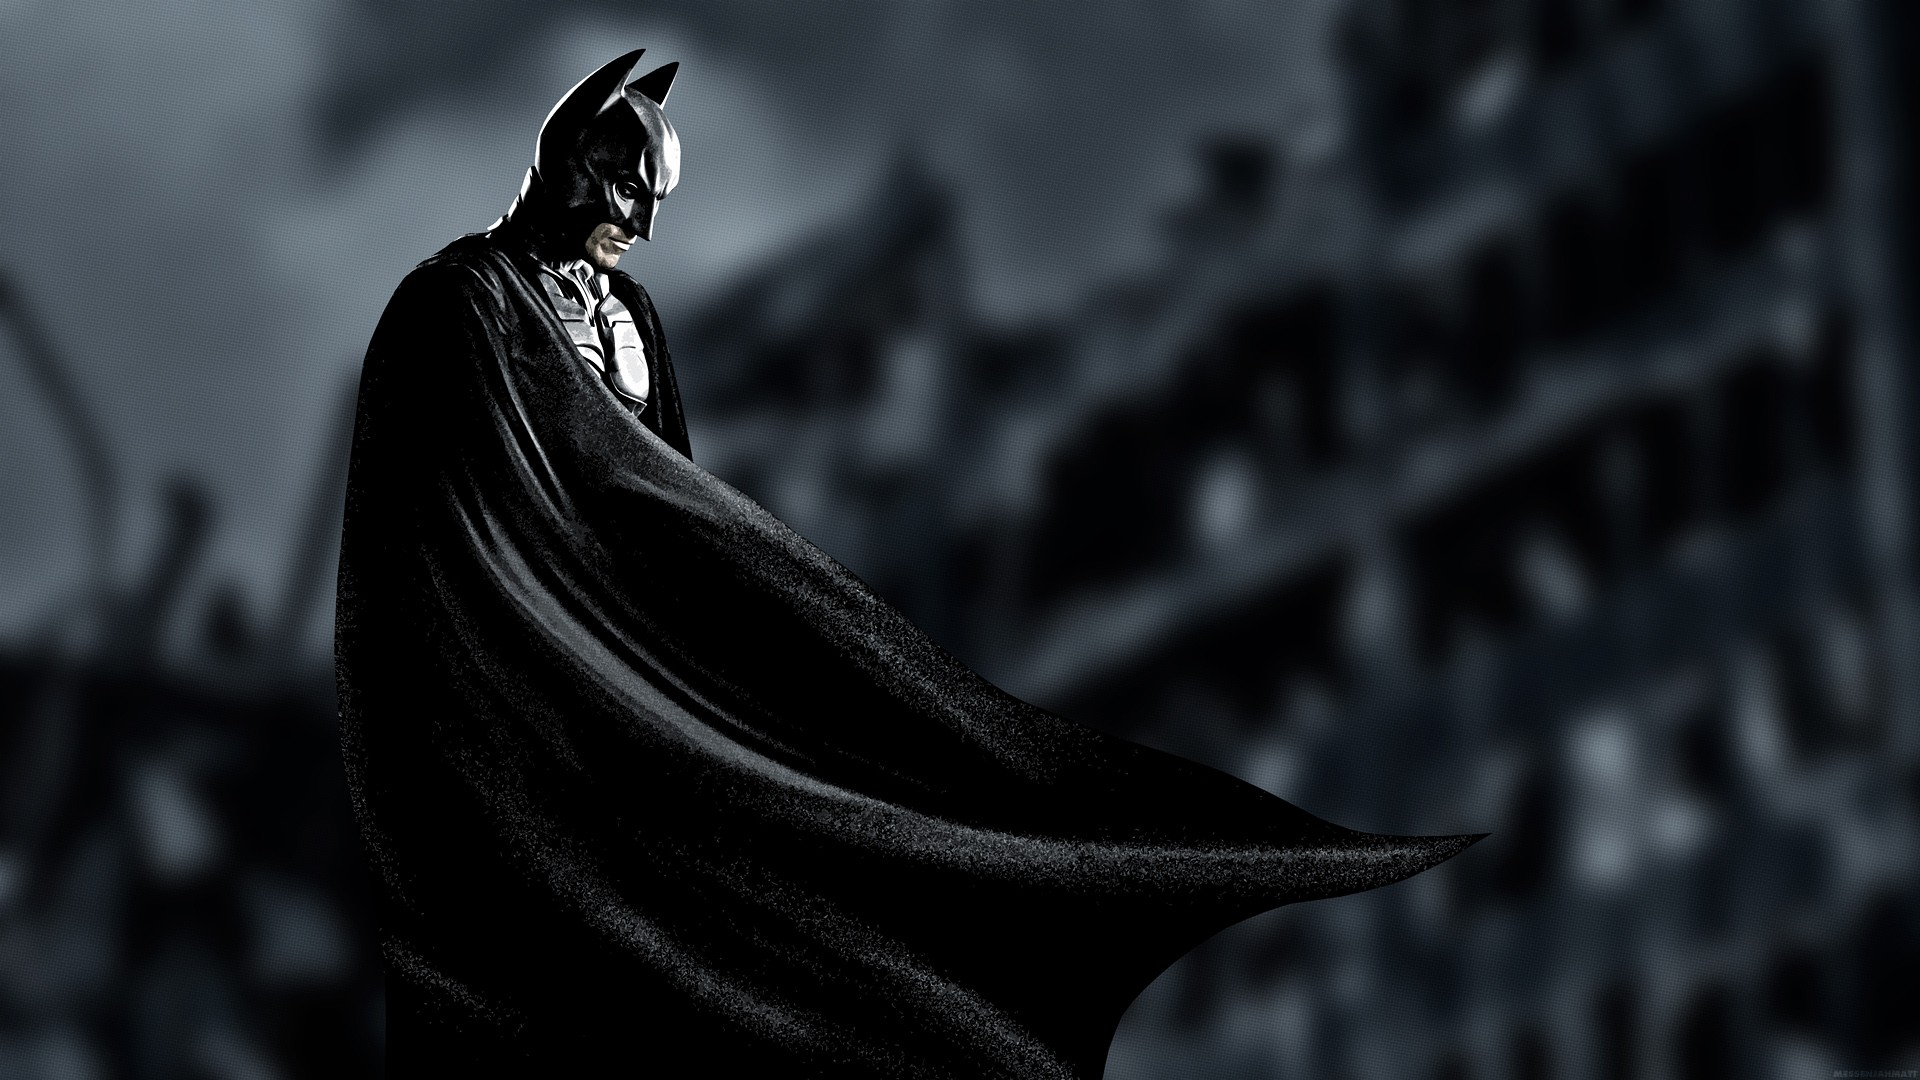 batman-the-dark-knight-rises-desktop-wallpaper